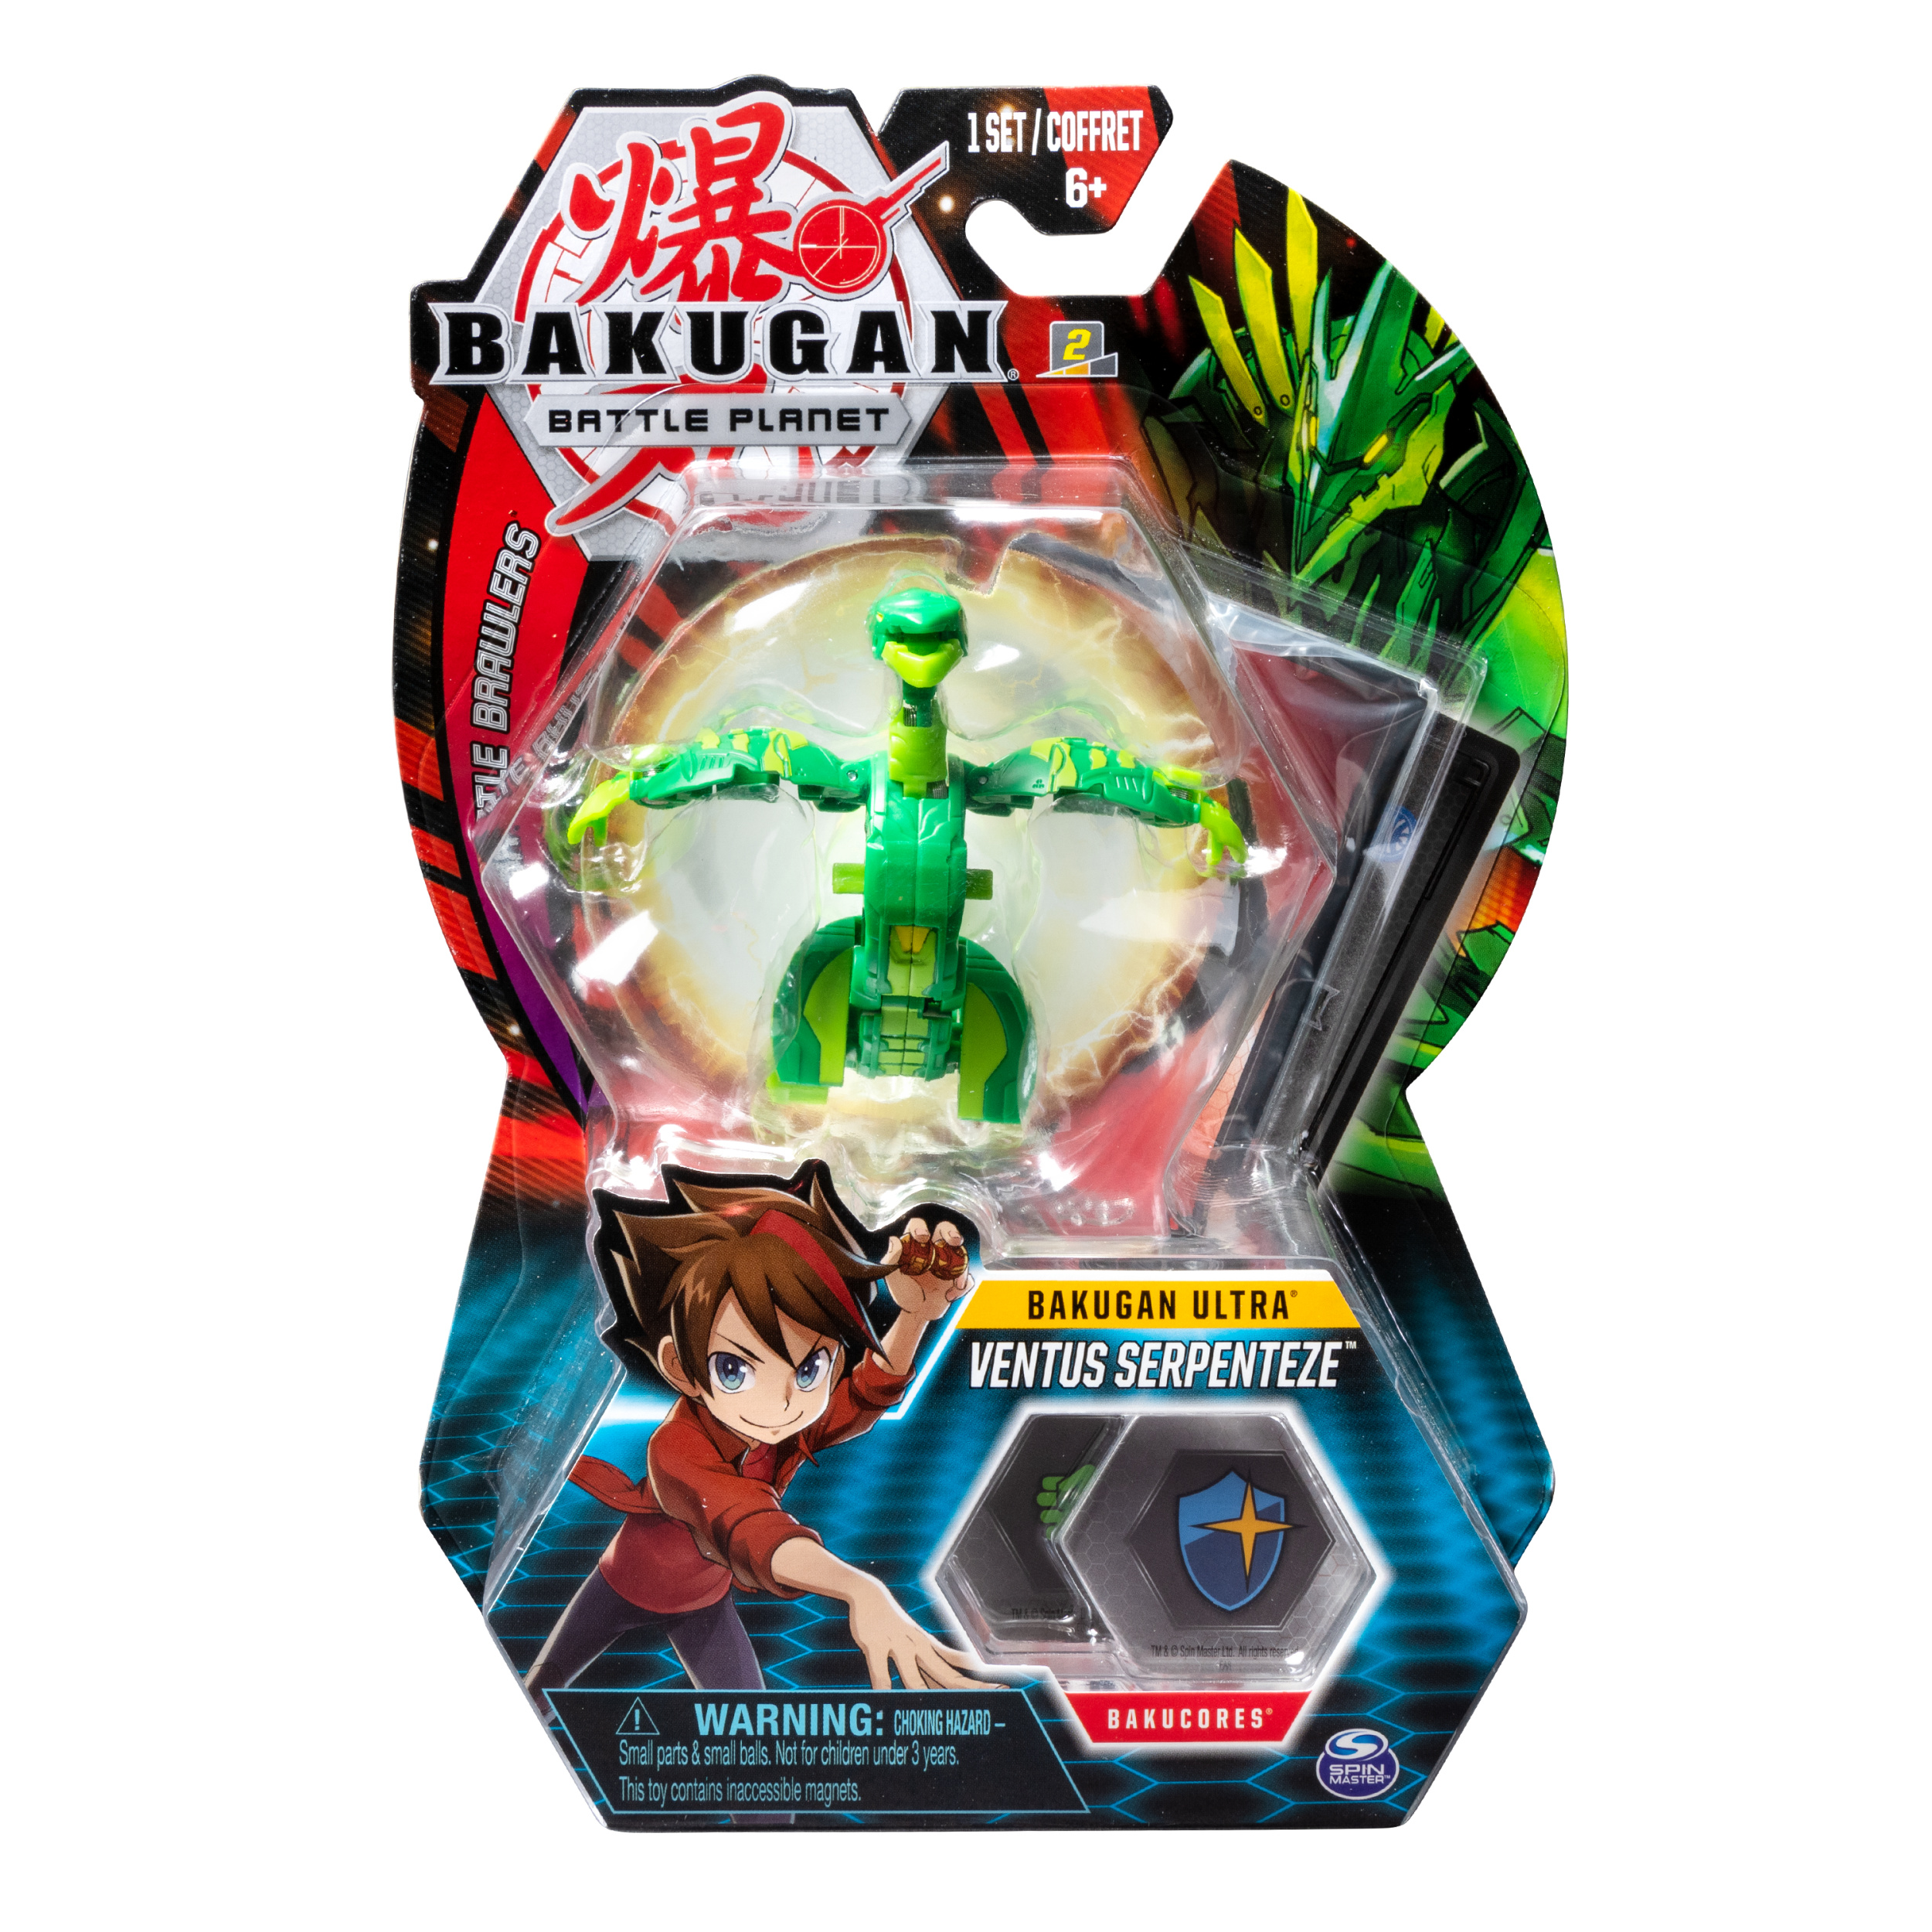 Bakugan Ultra, Ventus Serpenteze, 3-inch Collectible Action Figure and Trading Card, for Ages 6 and Up